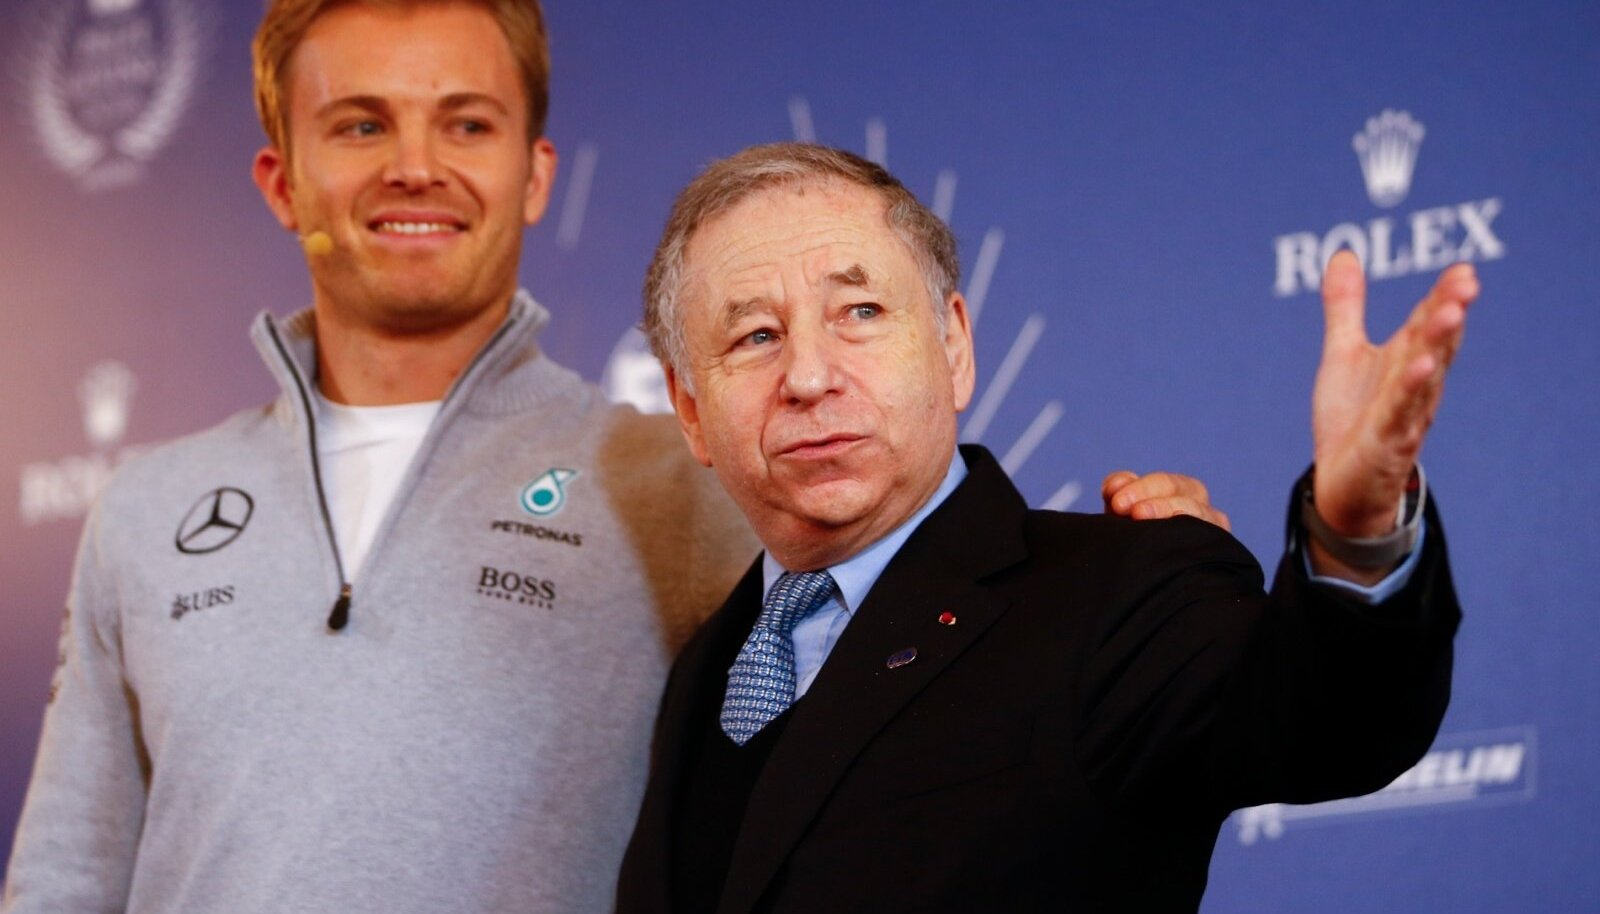 Mercedes' Formula One World Champion Nico Rosberg of Germany poses with Jean Todt, Federation Internationale de l'Automobile (FIA) President in Vienna